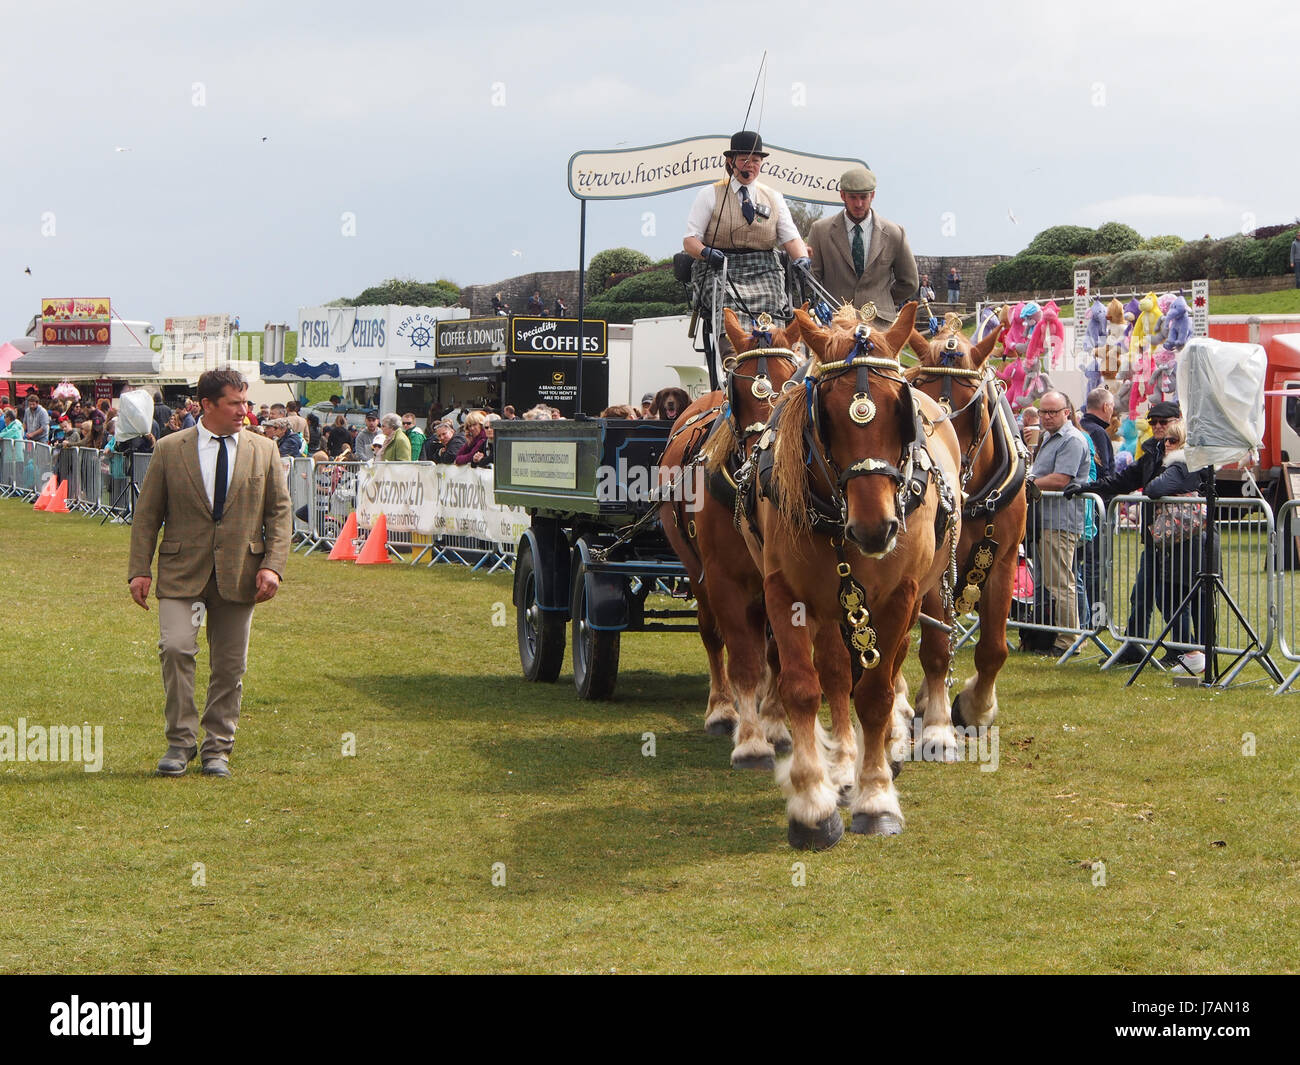 A cart drawn by four shire horses on display in an arena at a country show - Stock Image